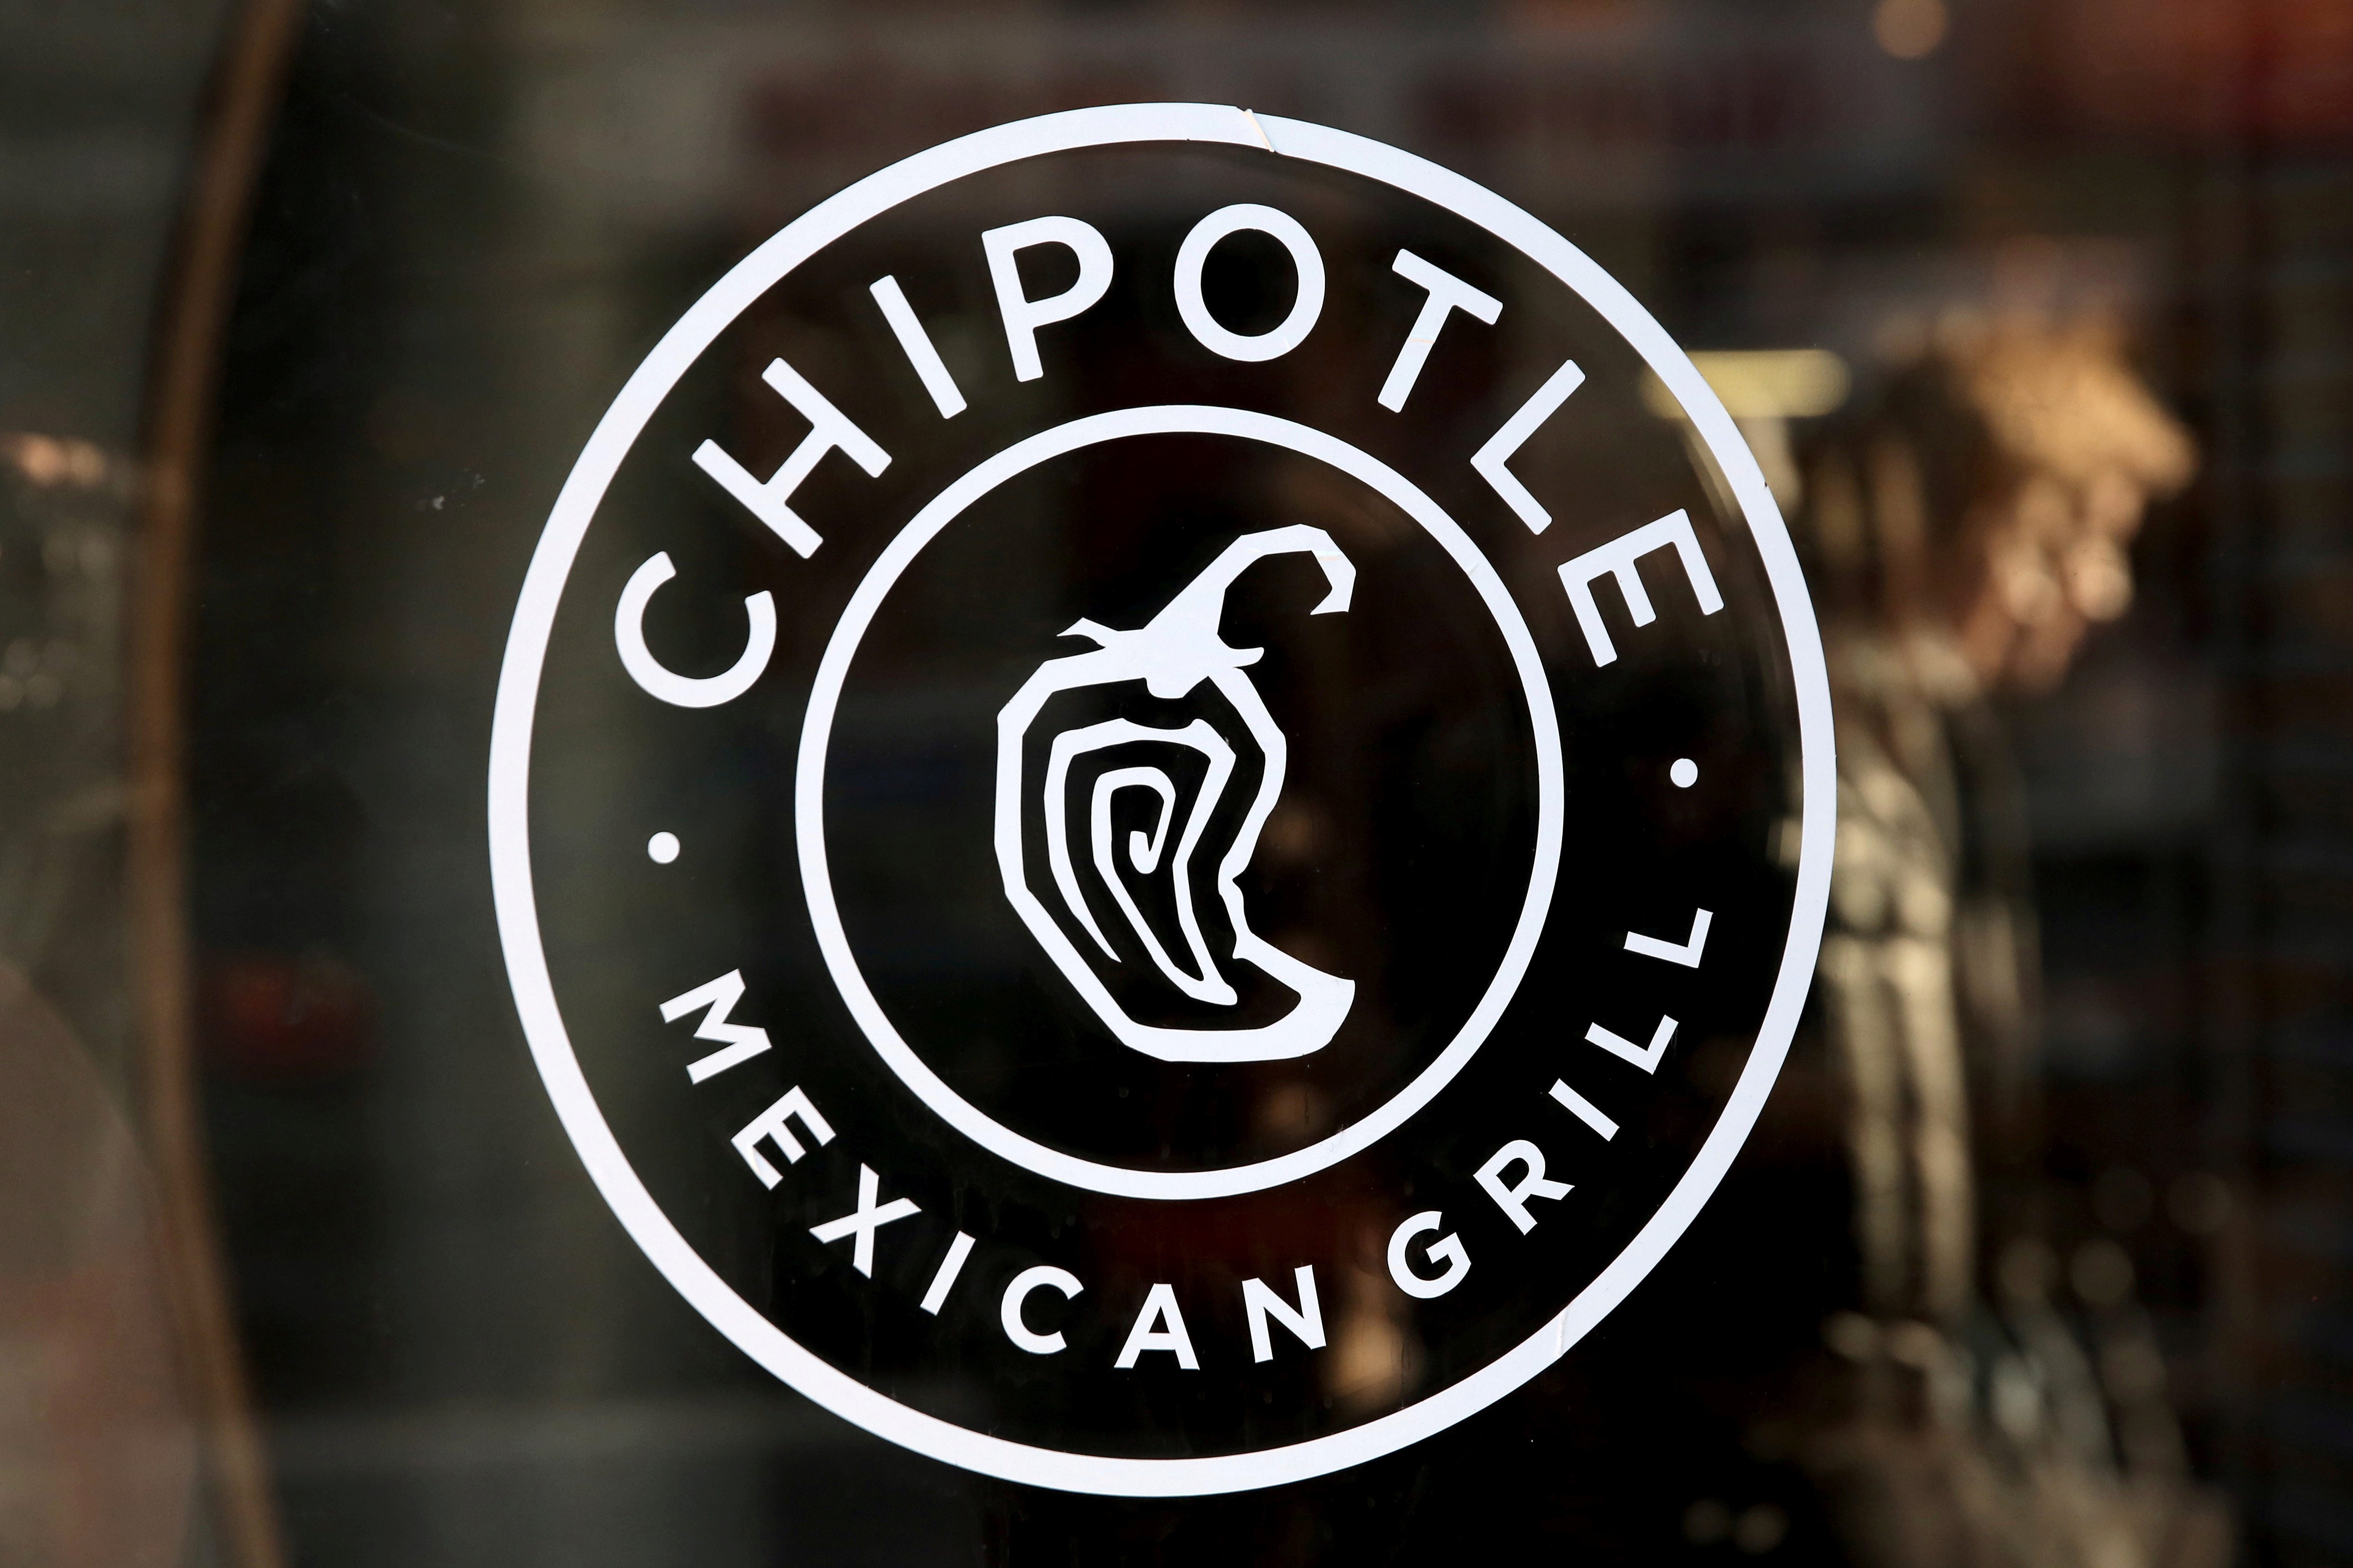 A logo of Chipotle Mexican Grill is seen on a store entrance in Manhattan, New York November 23, 2015. REUTERS/Andrew Kelly/File Photo